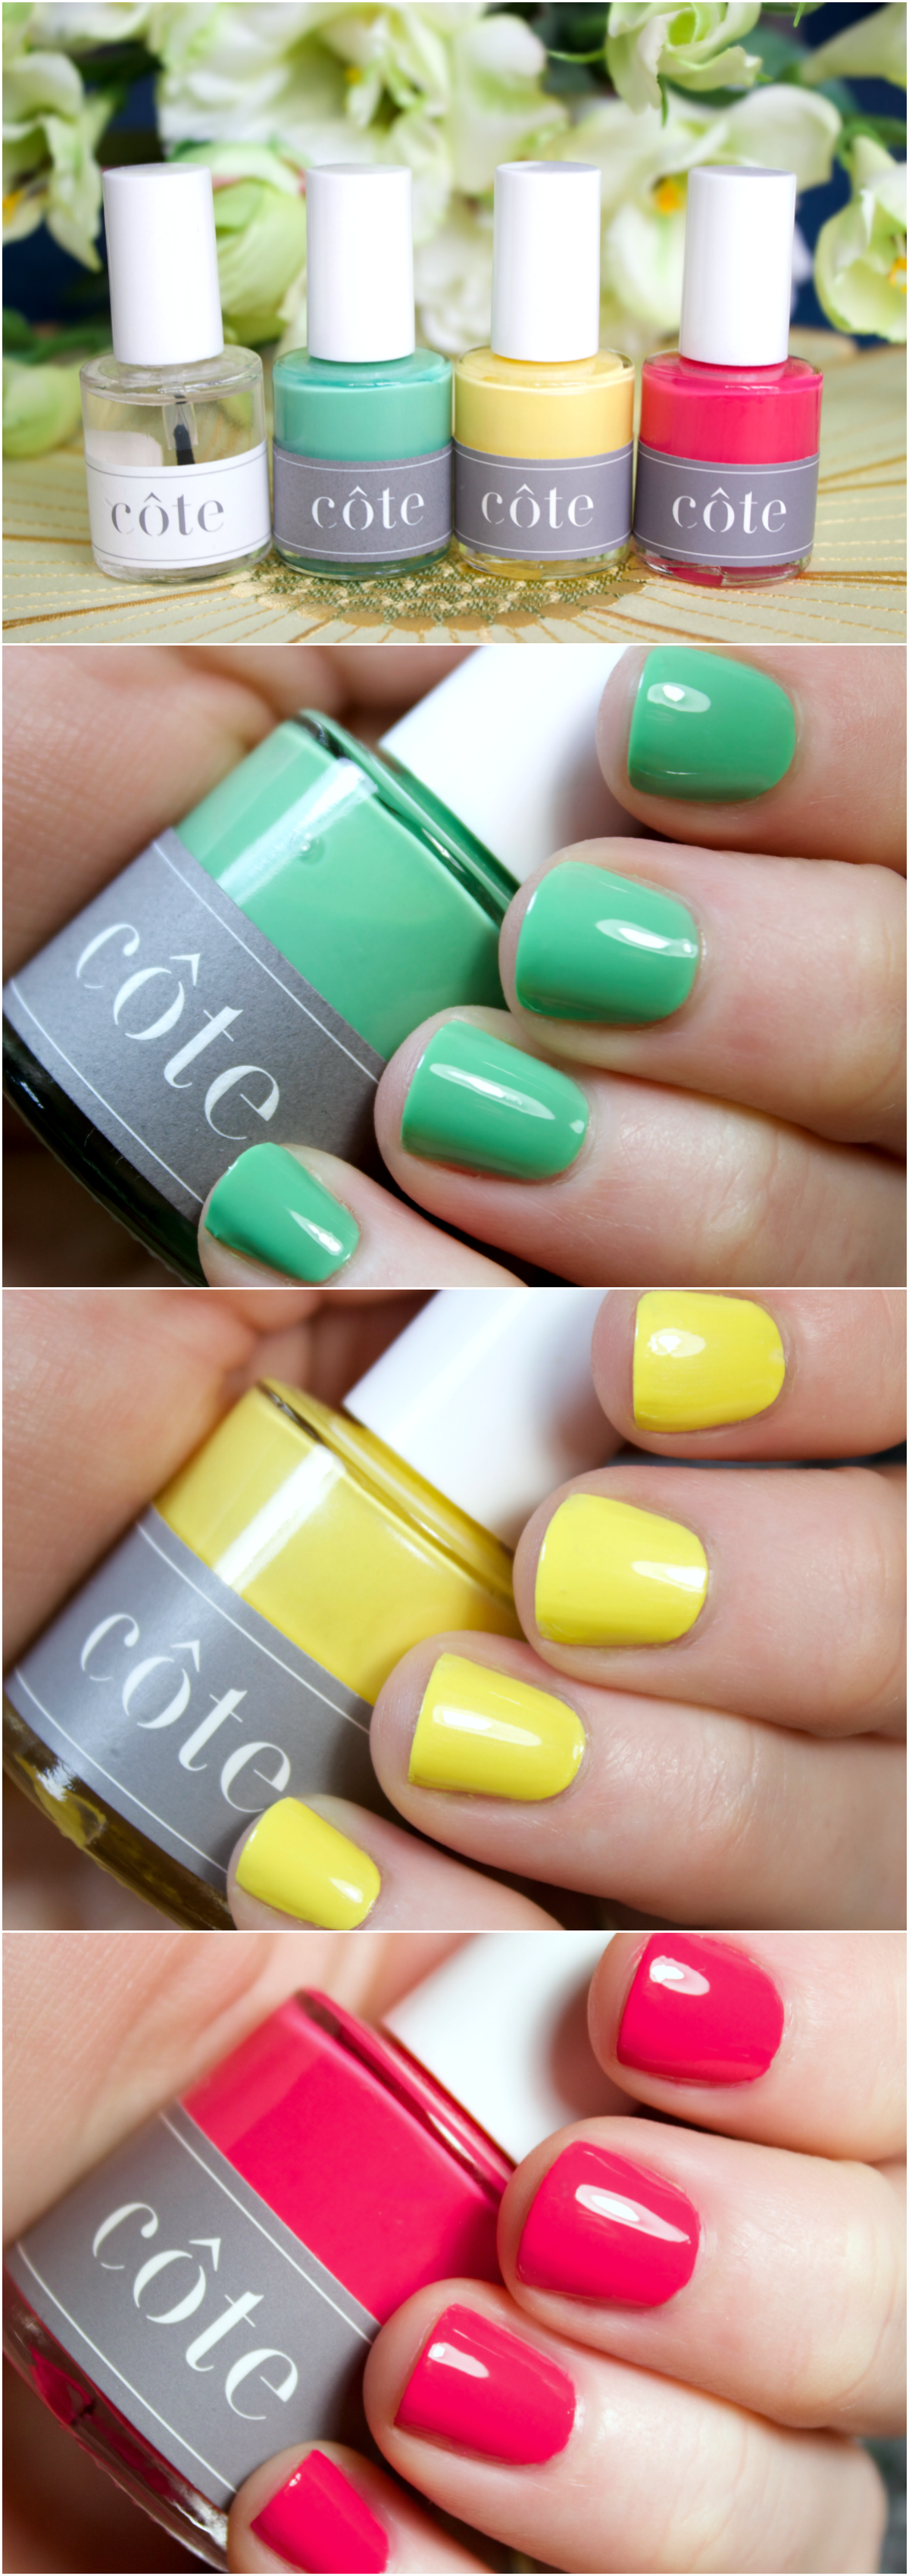 Côte Nail Color Cruelty Free Spring Colors The